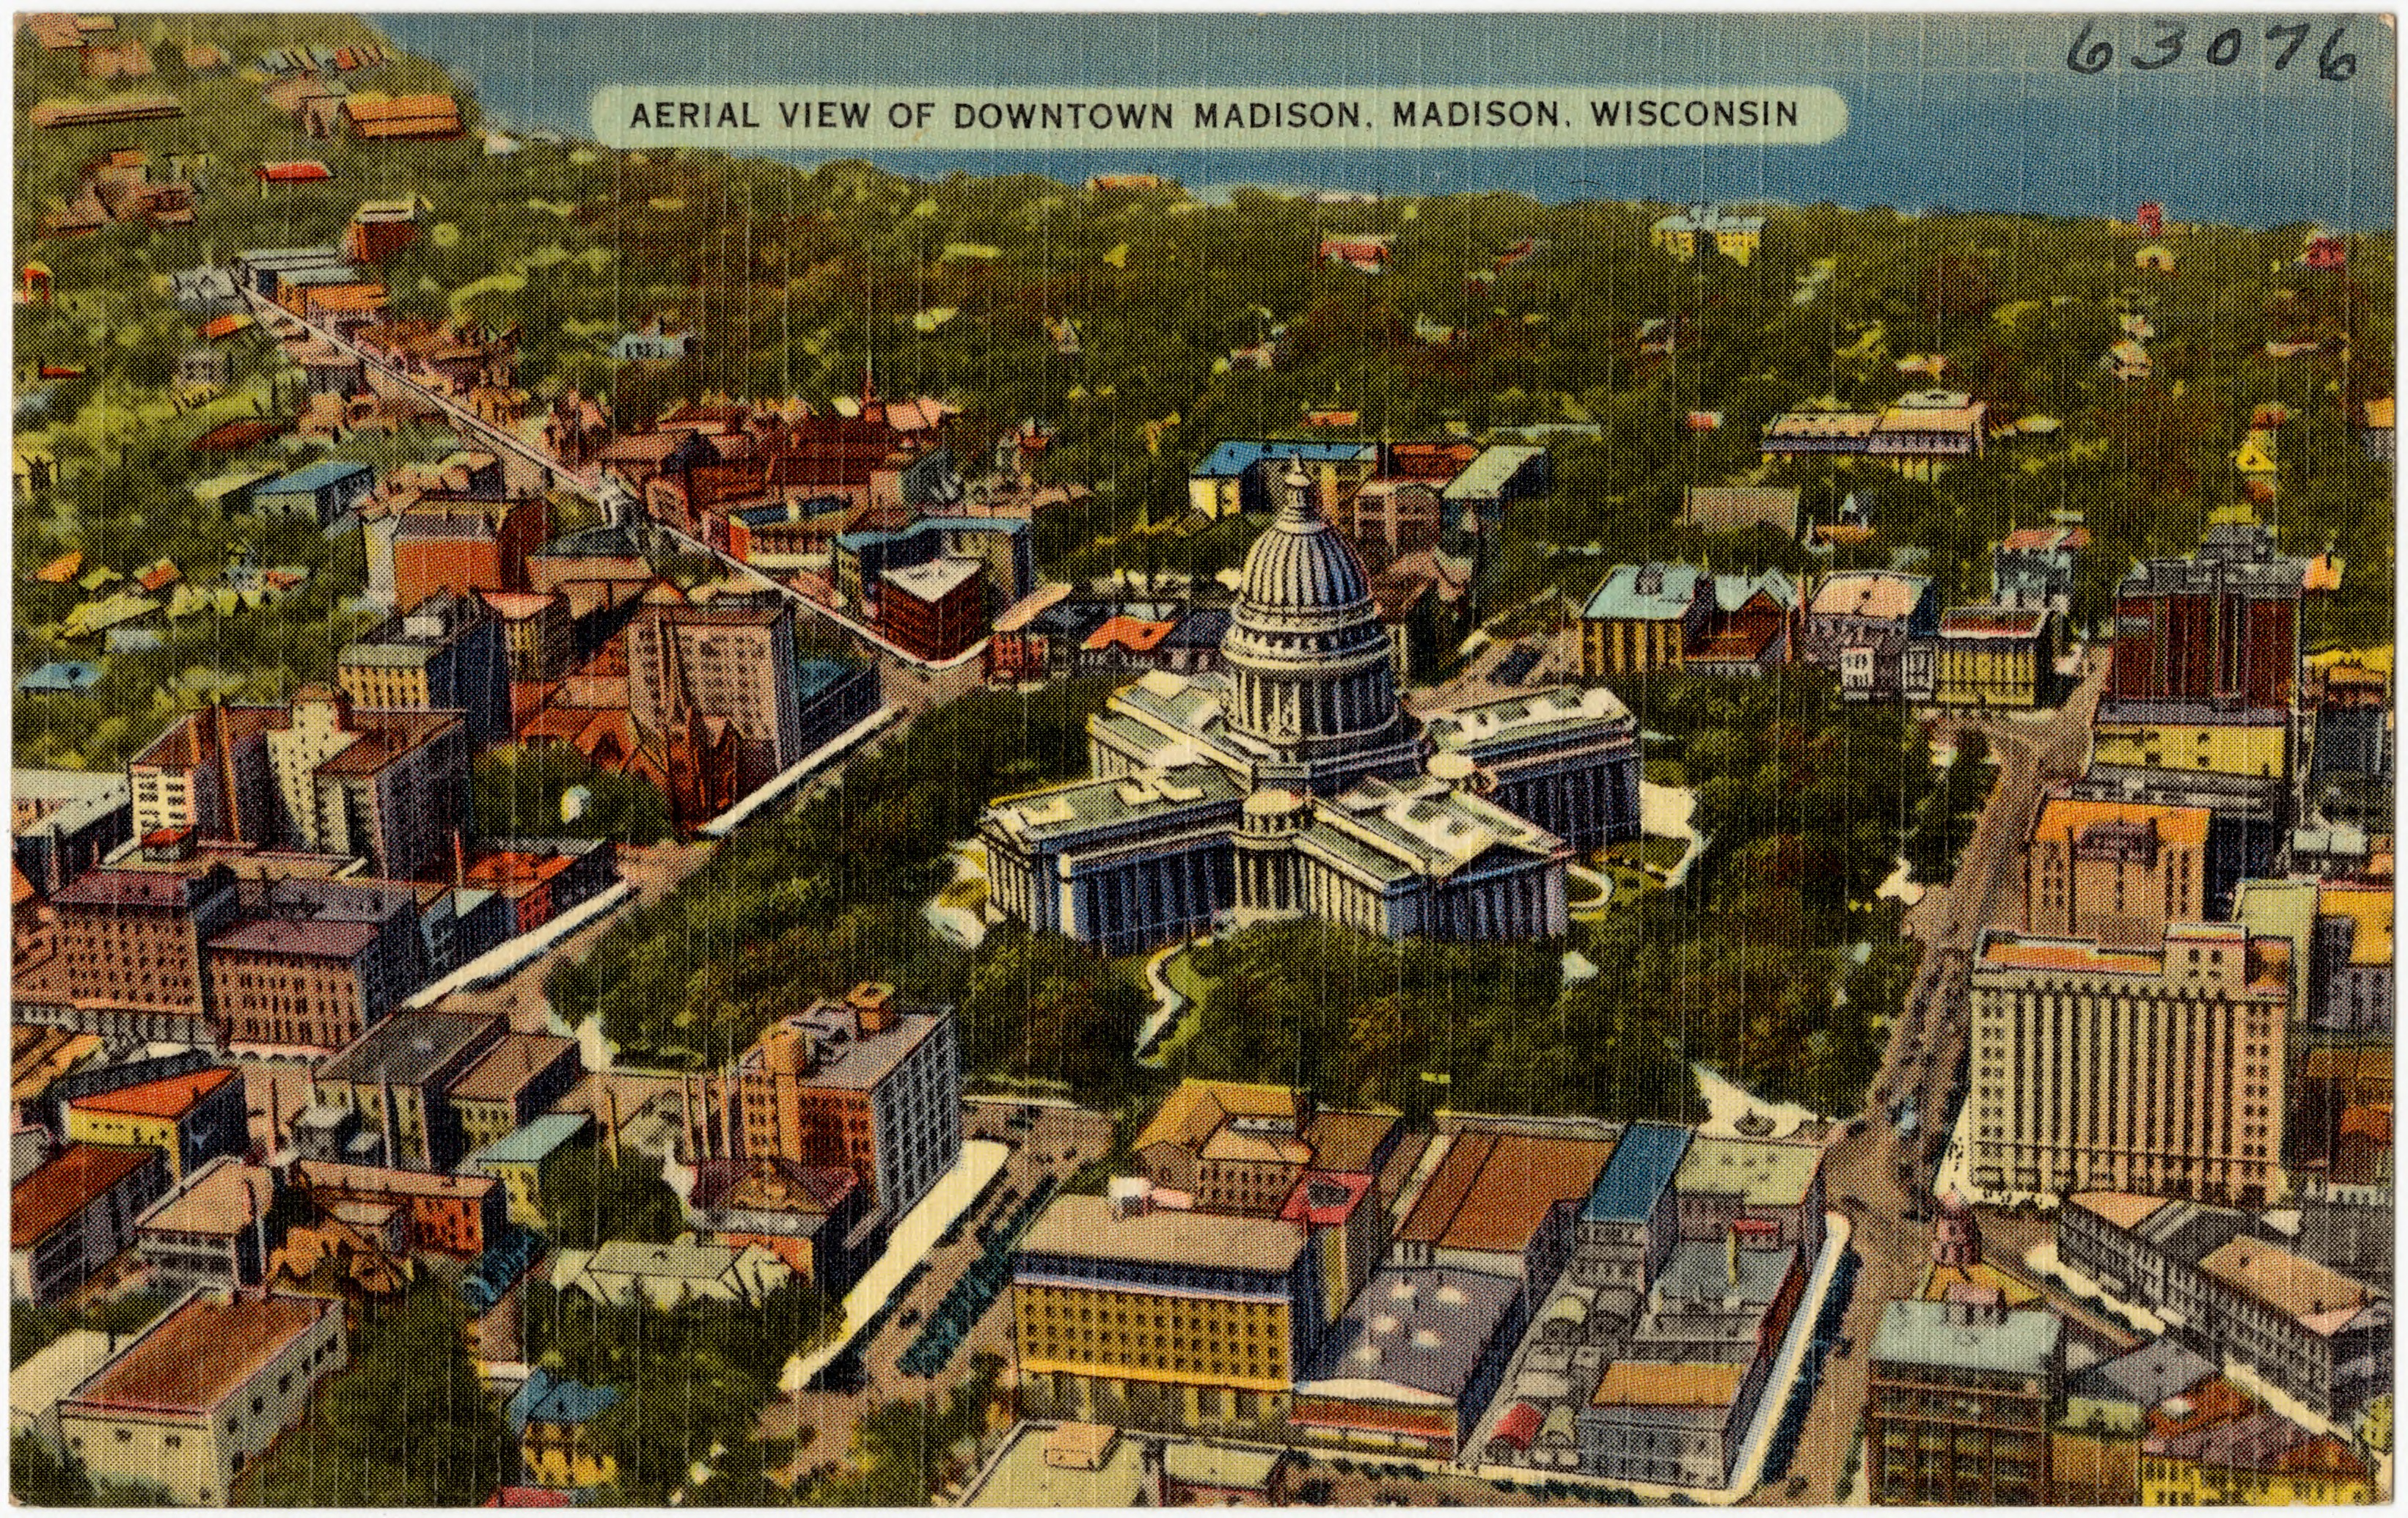 File:Aerial View Of Downtown Madison, Madison, Wisconsin